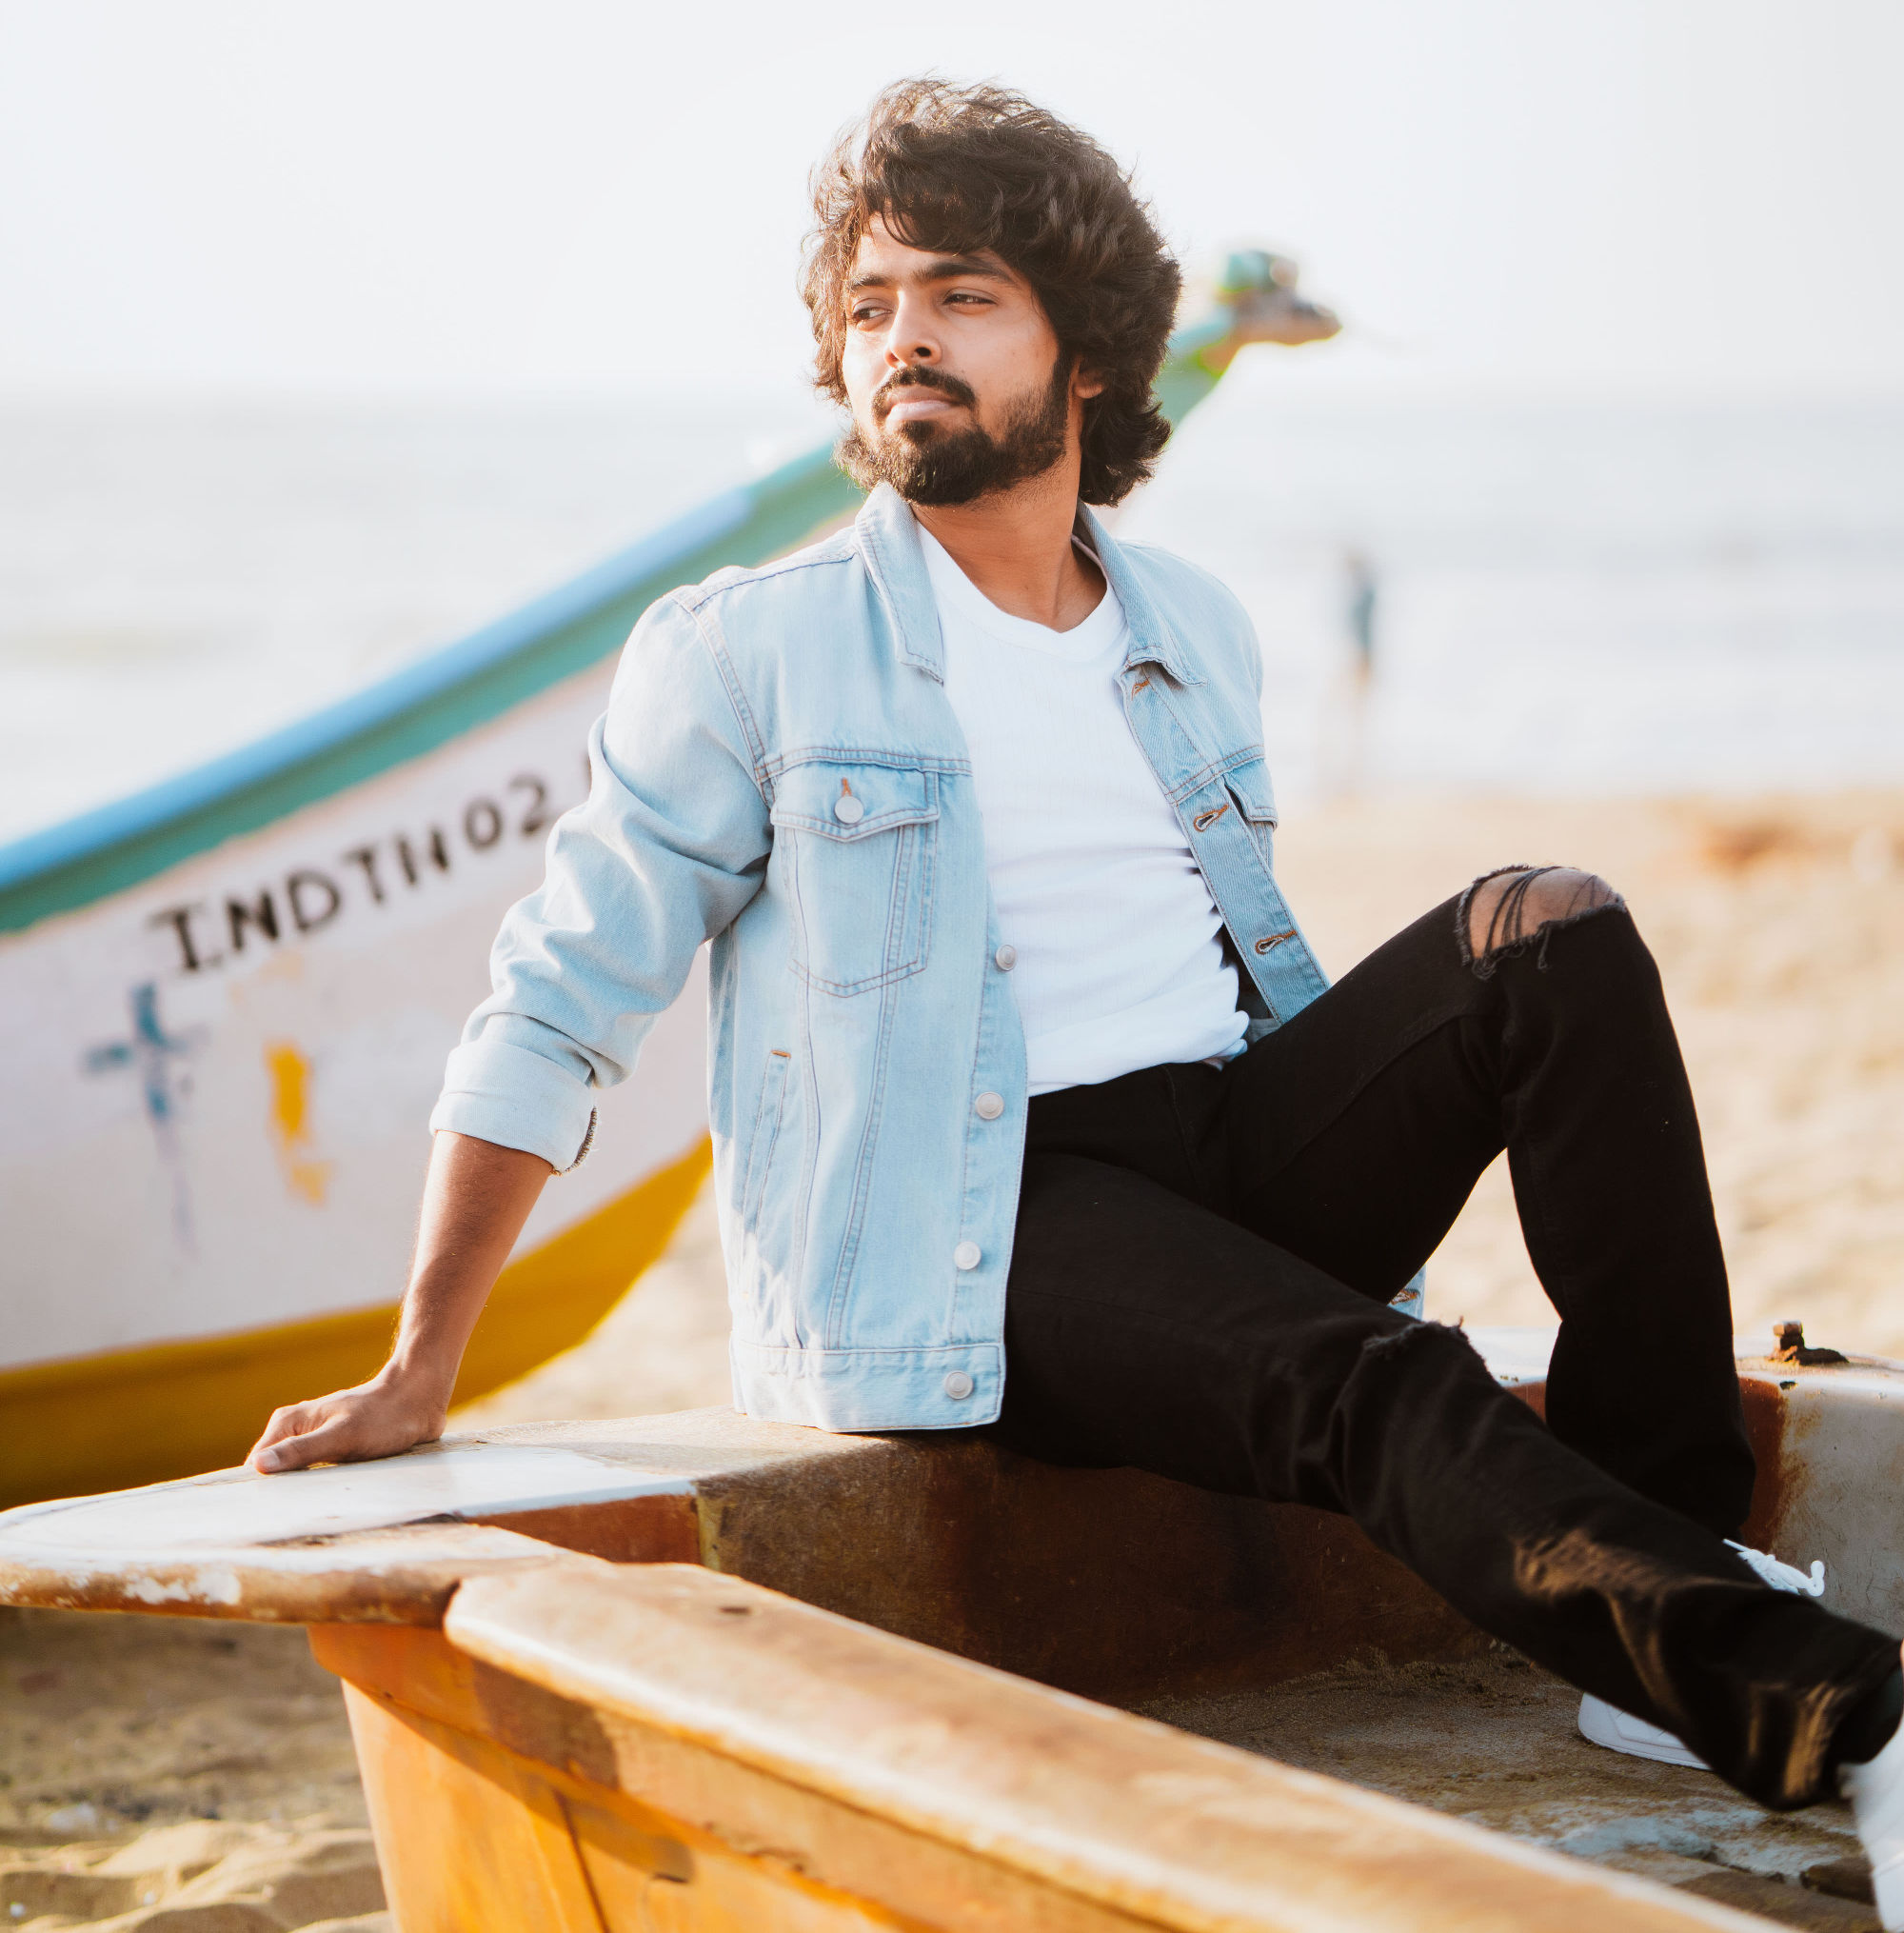 GV Prakash to auction songs on Binance app to auction songs on NFT Marketplace